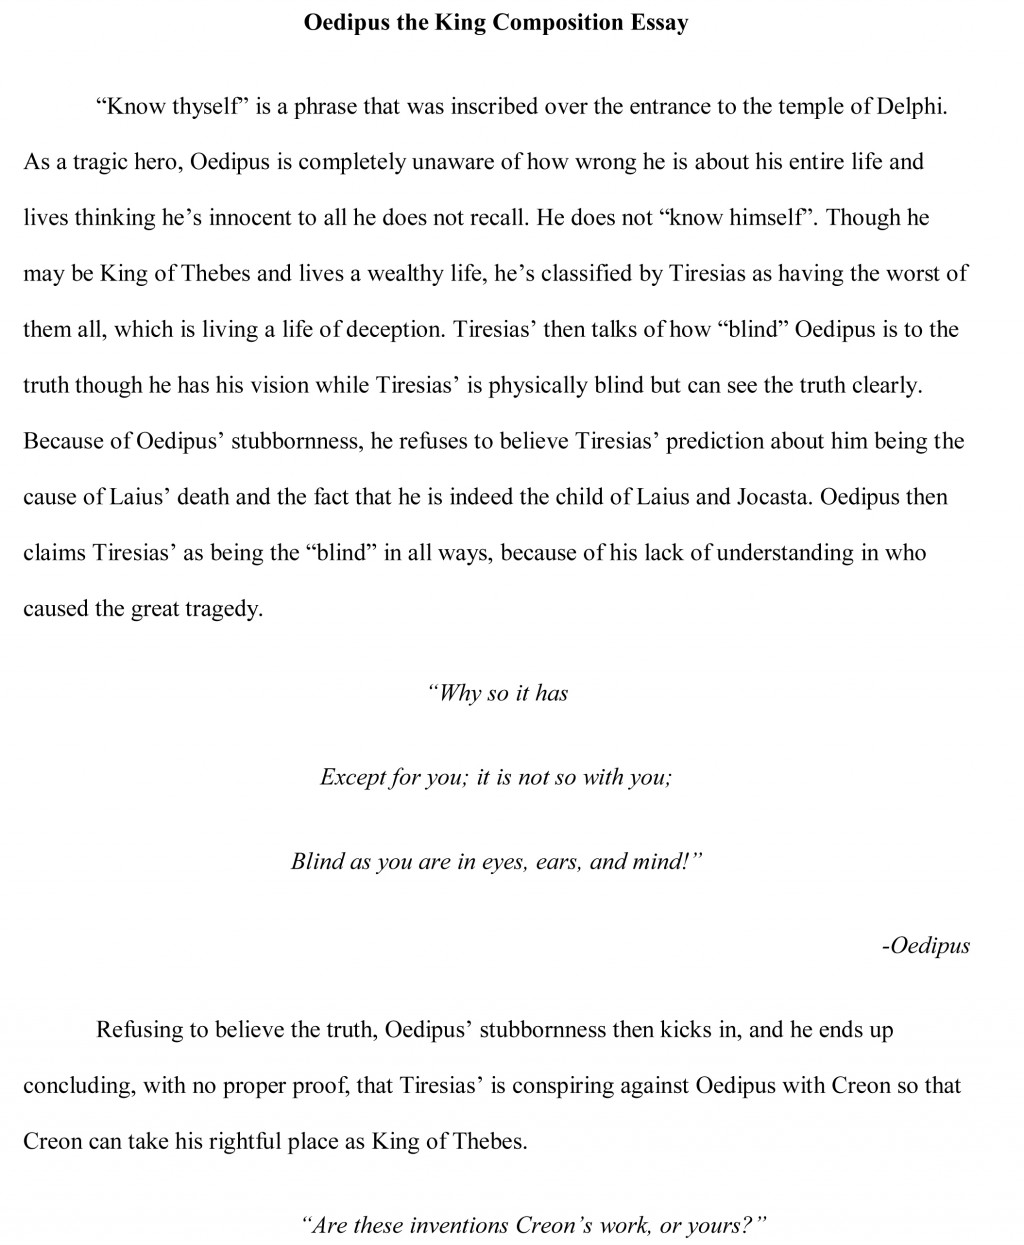 007 Oedipus Essay Free Sample How To Write Persuasive Introduction Wonderful A Example Large